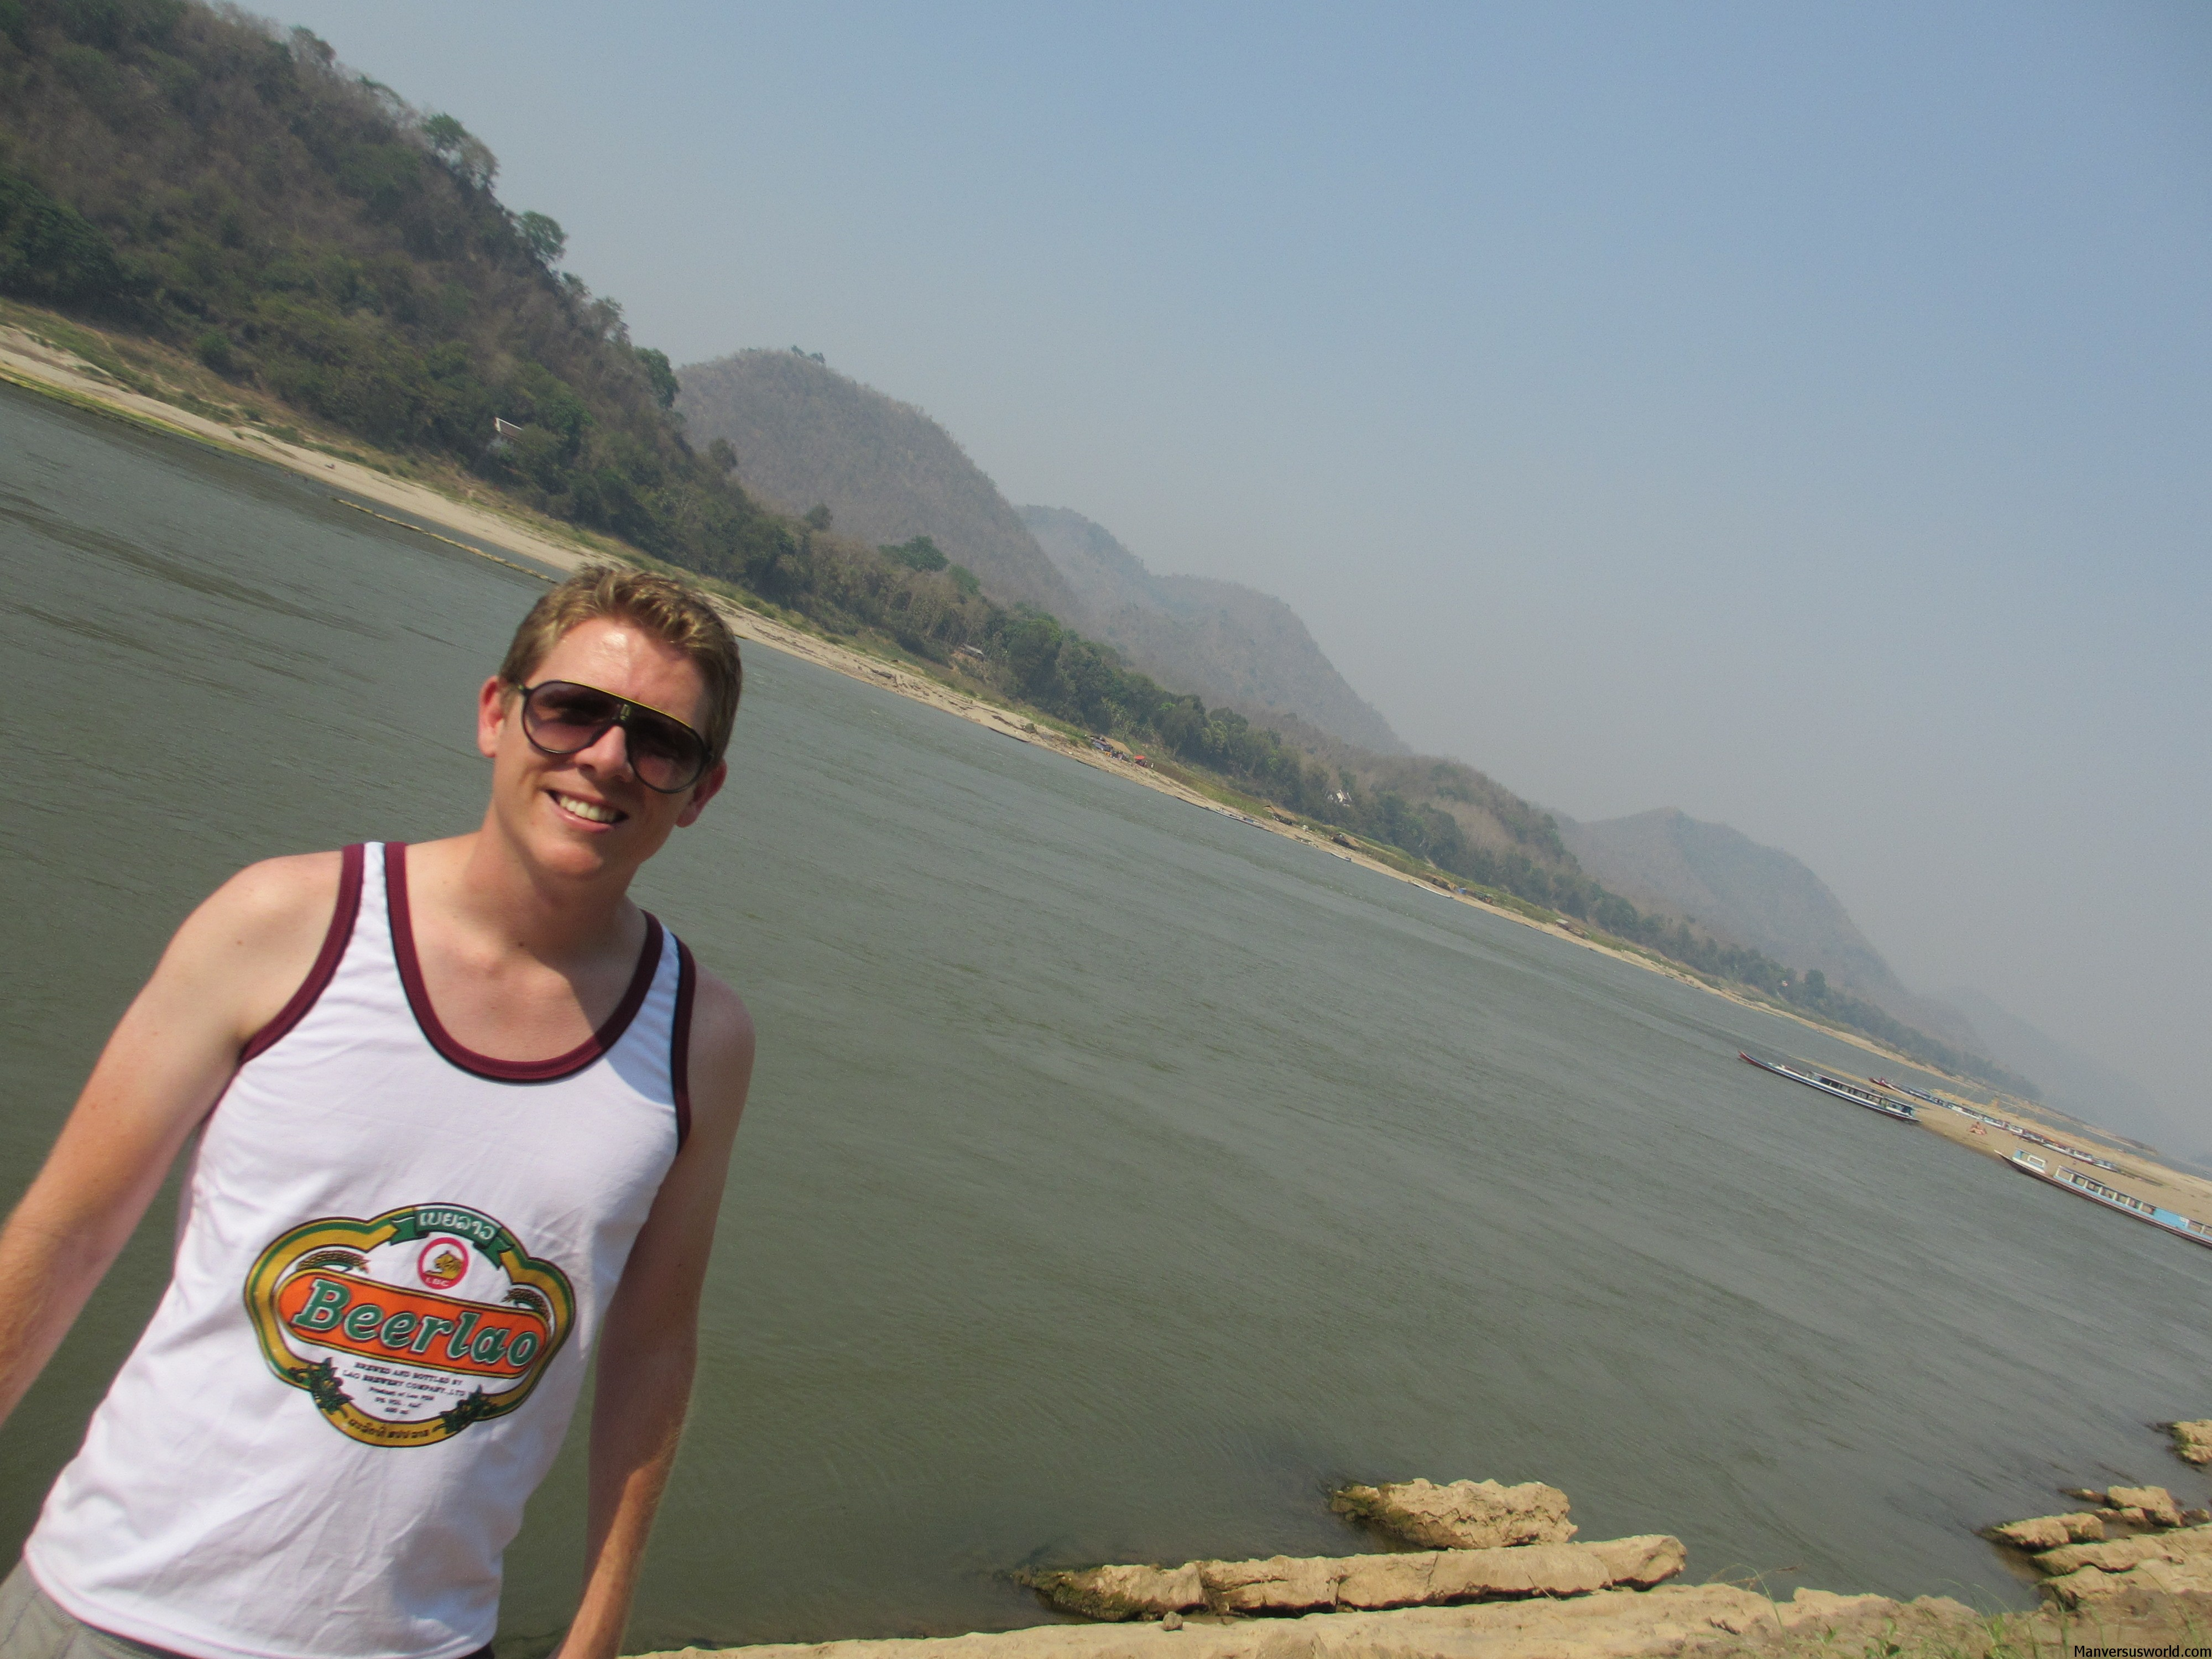 Me in Luang Prabang, Laos, next to the Mekong River.